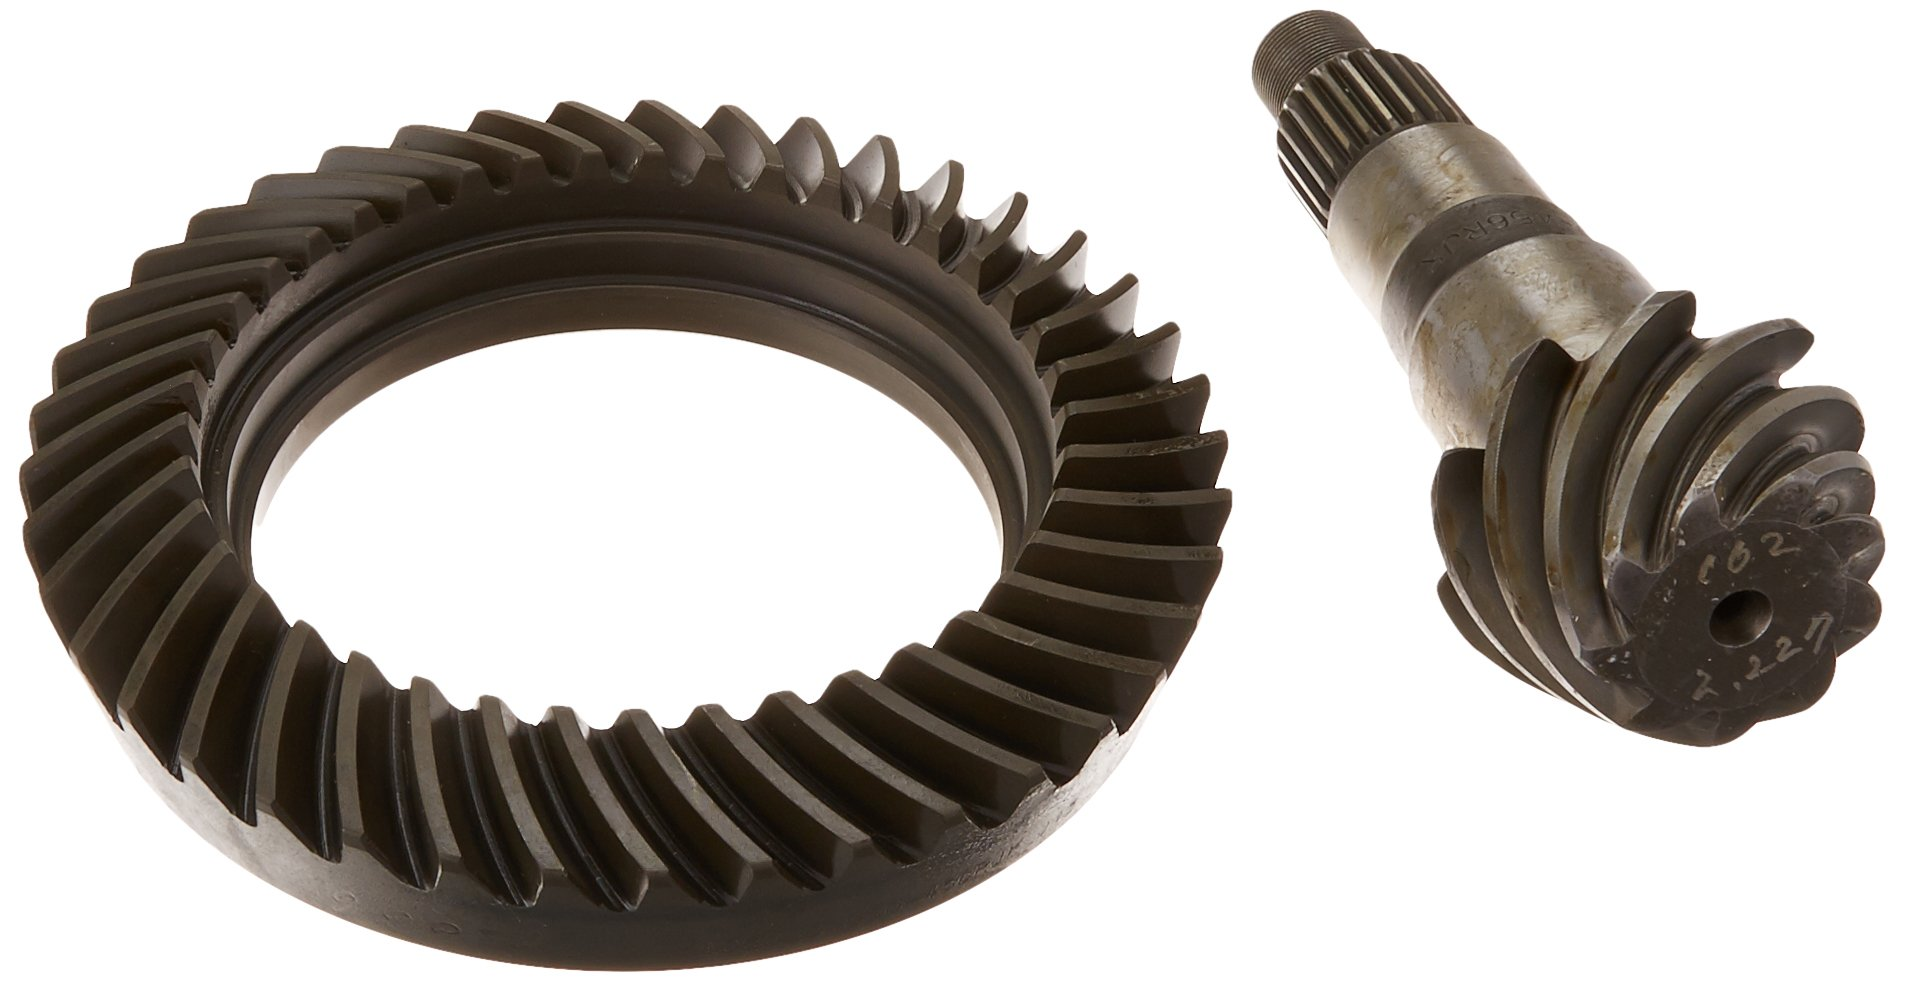 Motive Gear (D30-456RJK) Performance Ring and Pinion Differential Set, Dana 30 JK style, 41-9 Teeth, 4.56 Ratio by Motive Gear